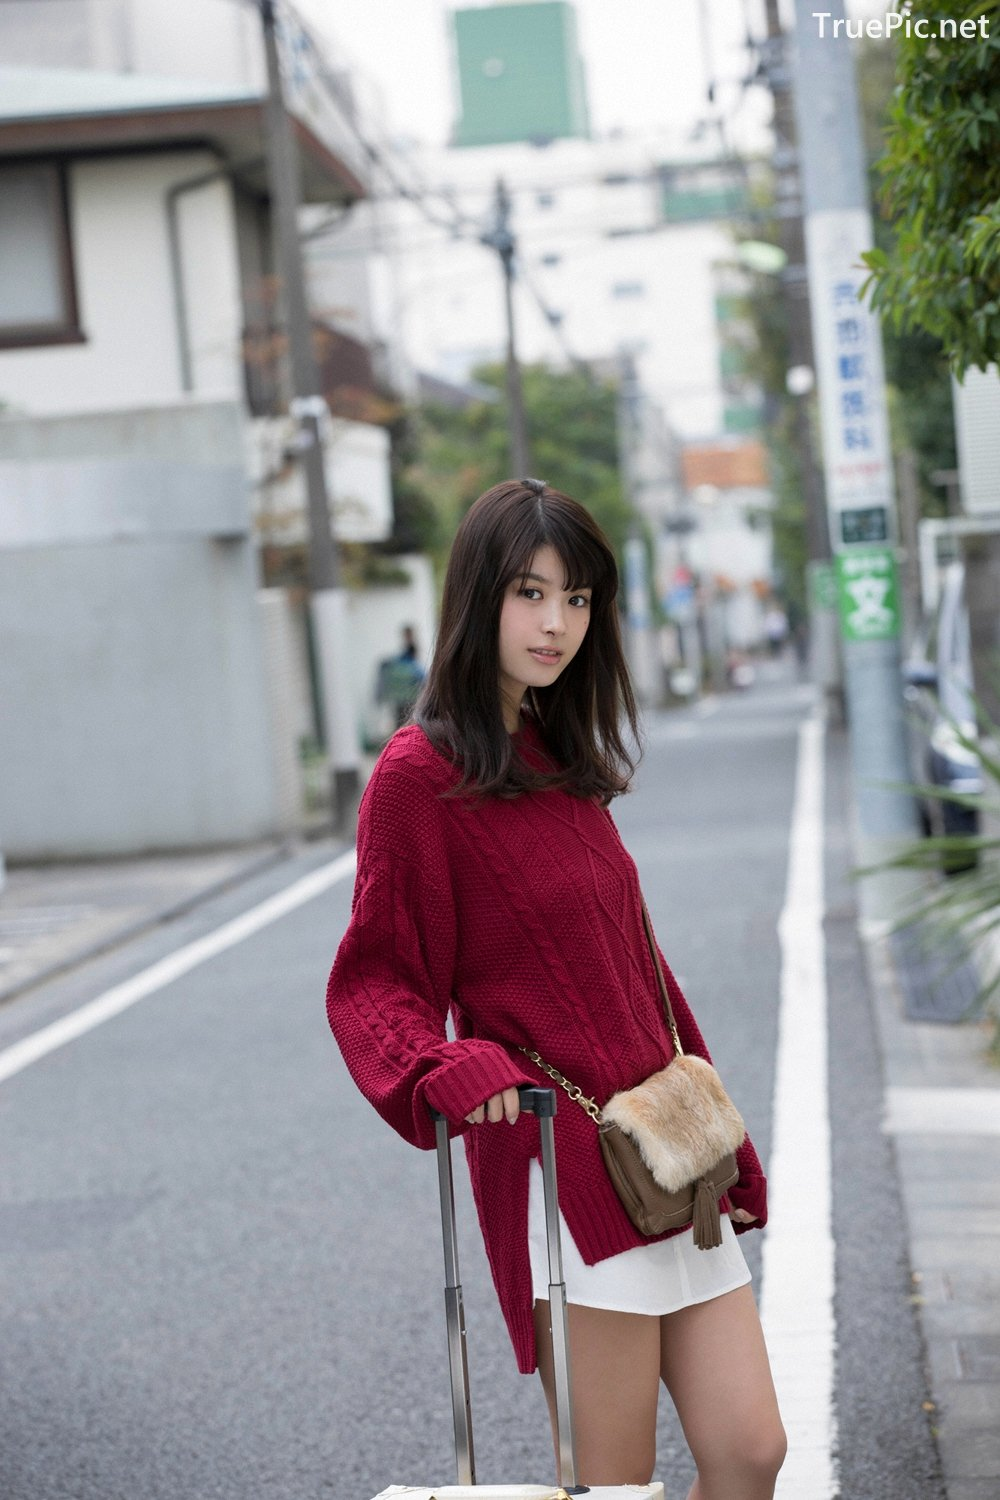 Japanese Actress And Model - Fumika Baba - YS Web Vol.729 - TruePic.net - Picture-2